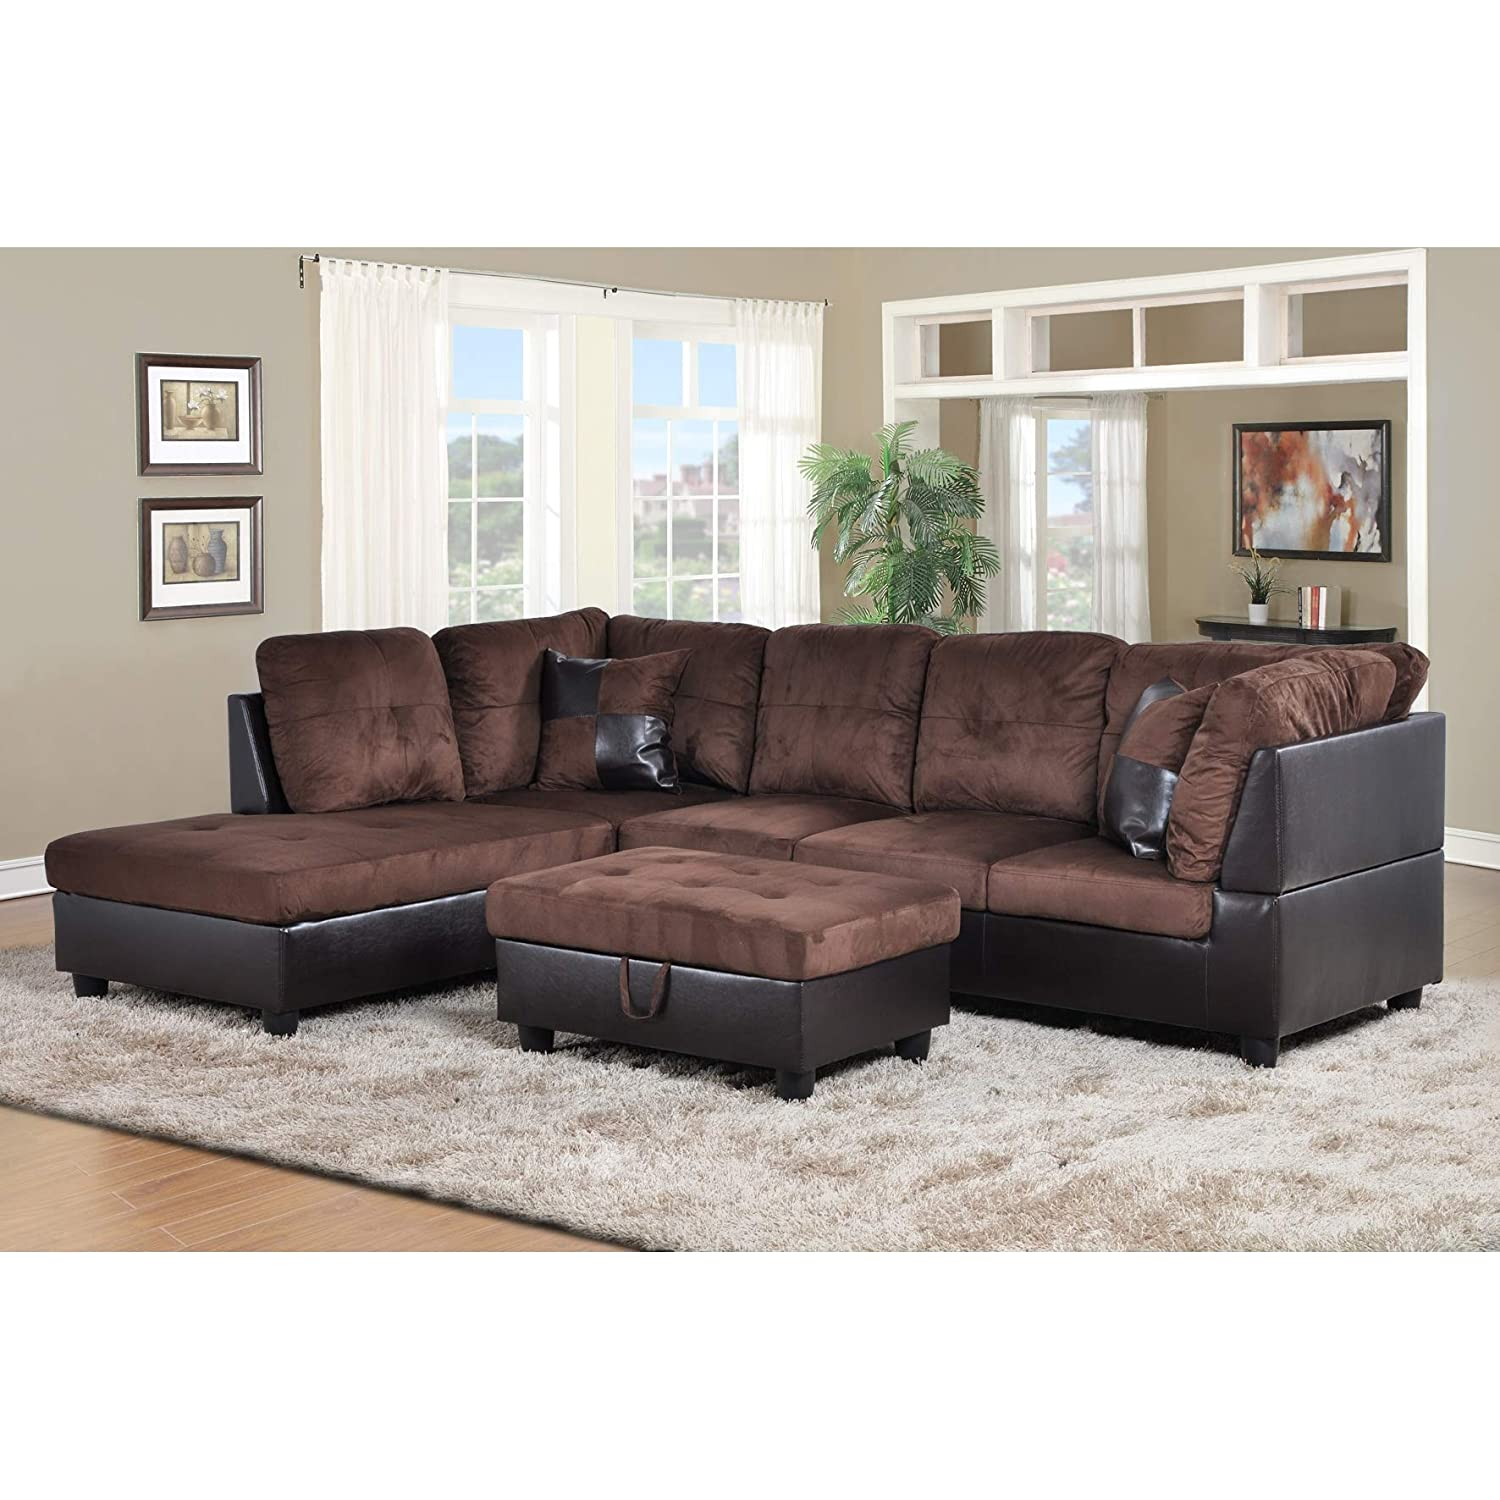 Amazon.com: AYCP FURNITURE Brown Contemporary Left Hand ...